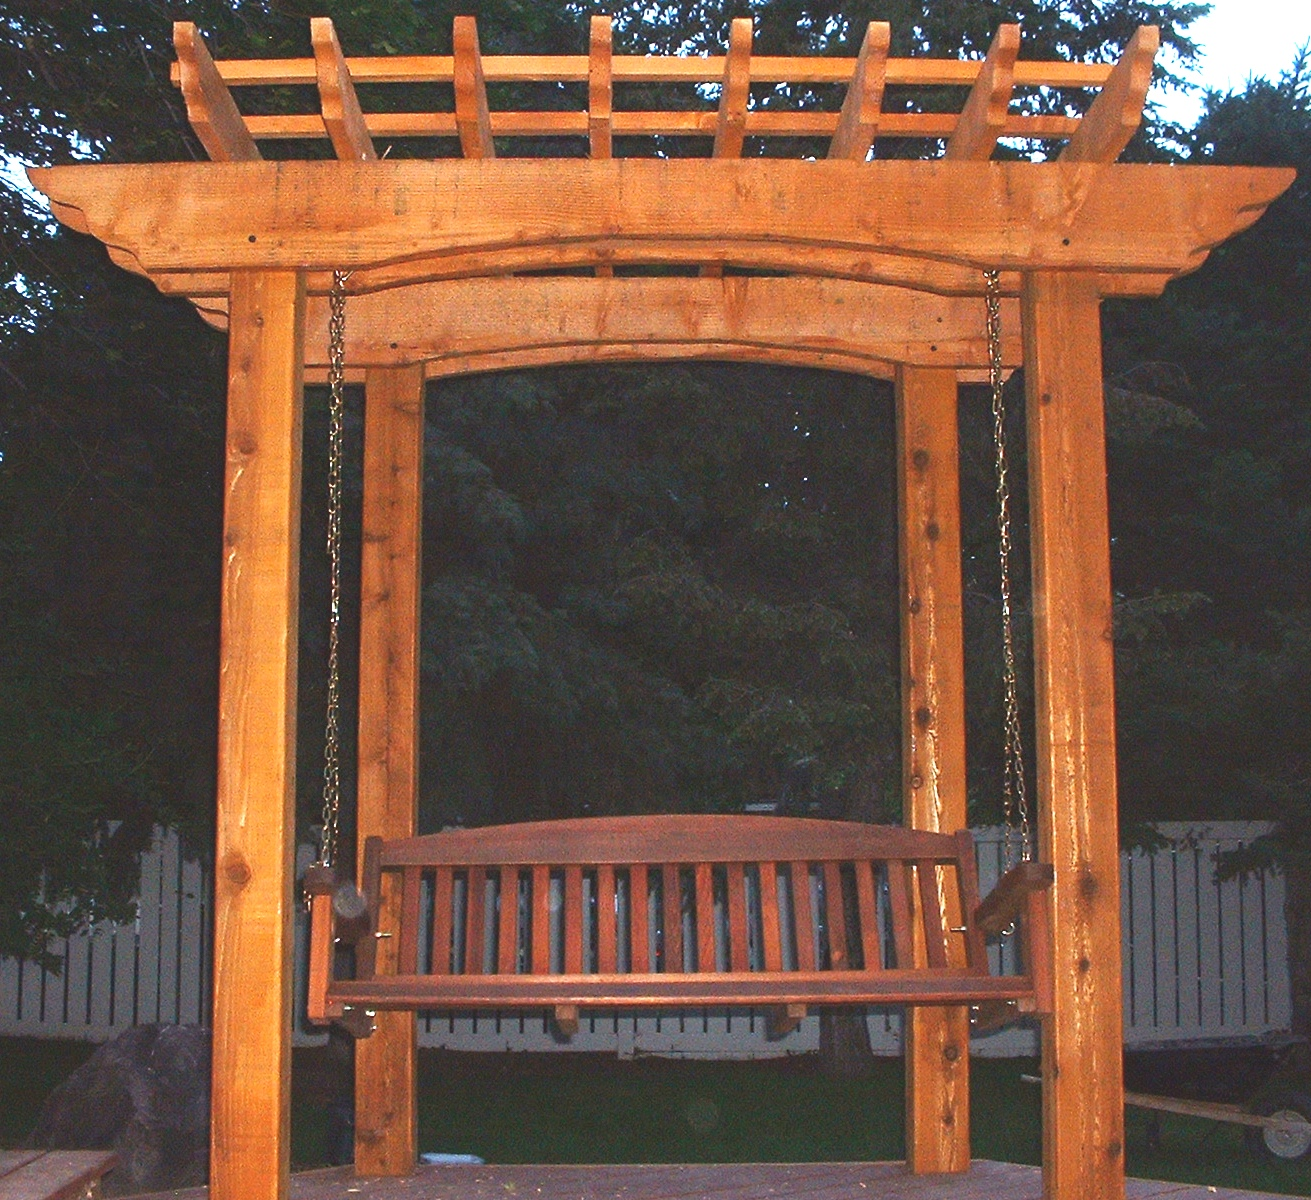 Impressive Pergola with Swing Plans 1311 x 1200 · 765 kB · jpeg